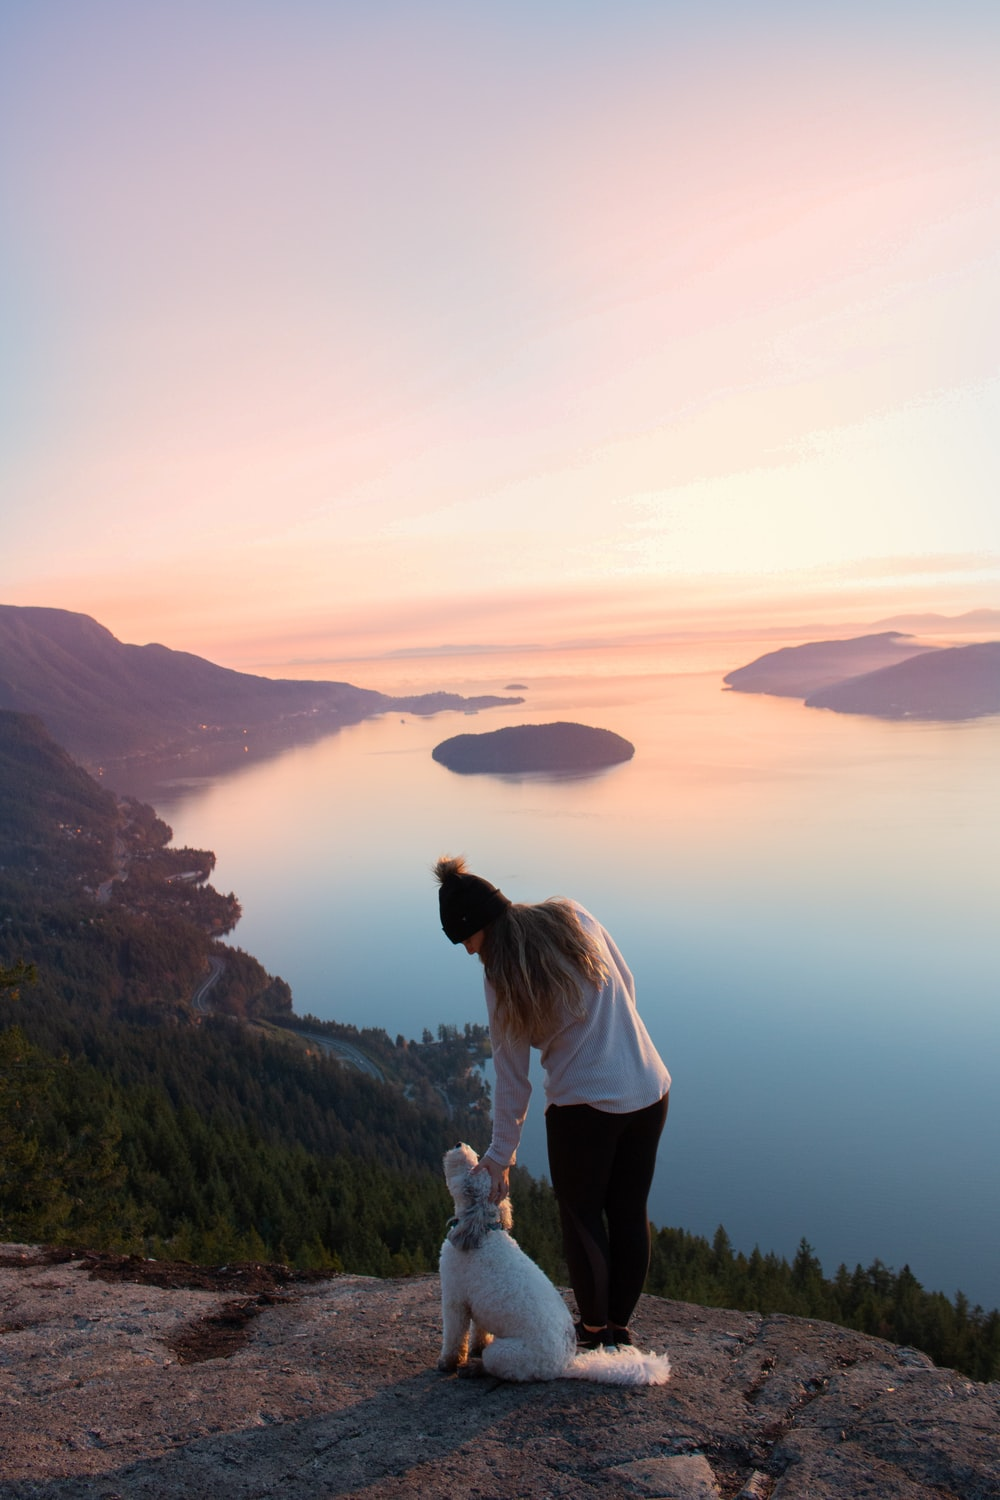 woman standing beside dog near the body of water